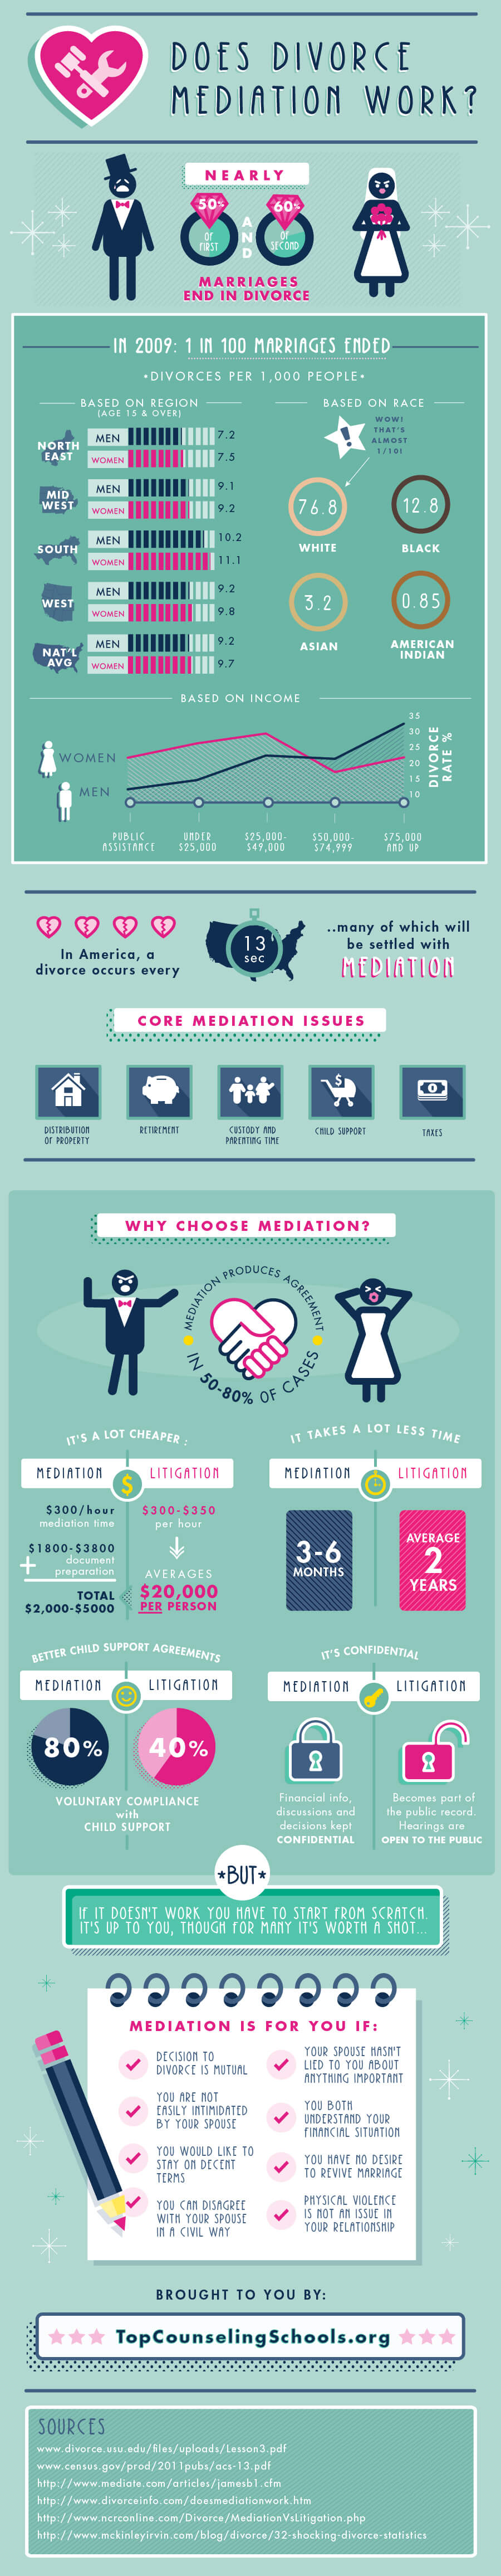 Divorce Mediation facts